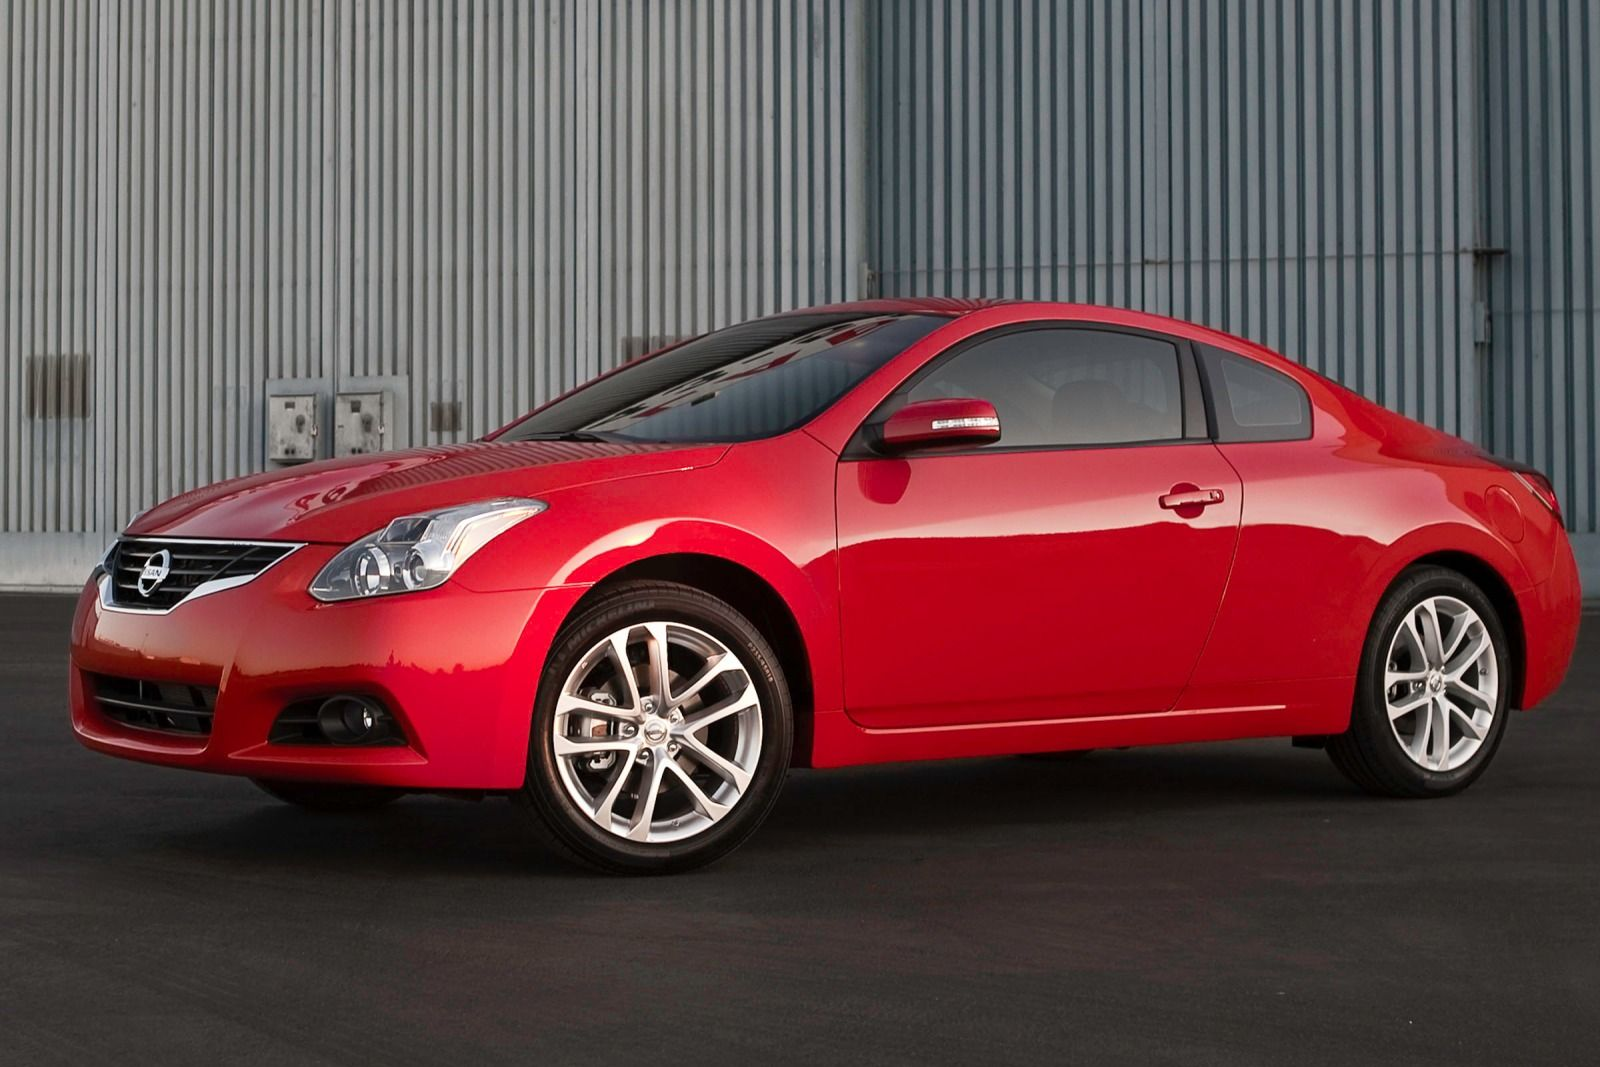 2014 nissan altima vi coupe pictures information and specs auto. Black Bedroom Furniture Sets. Home Design Ideas